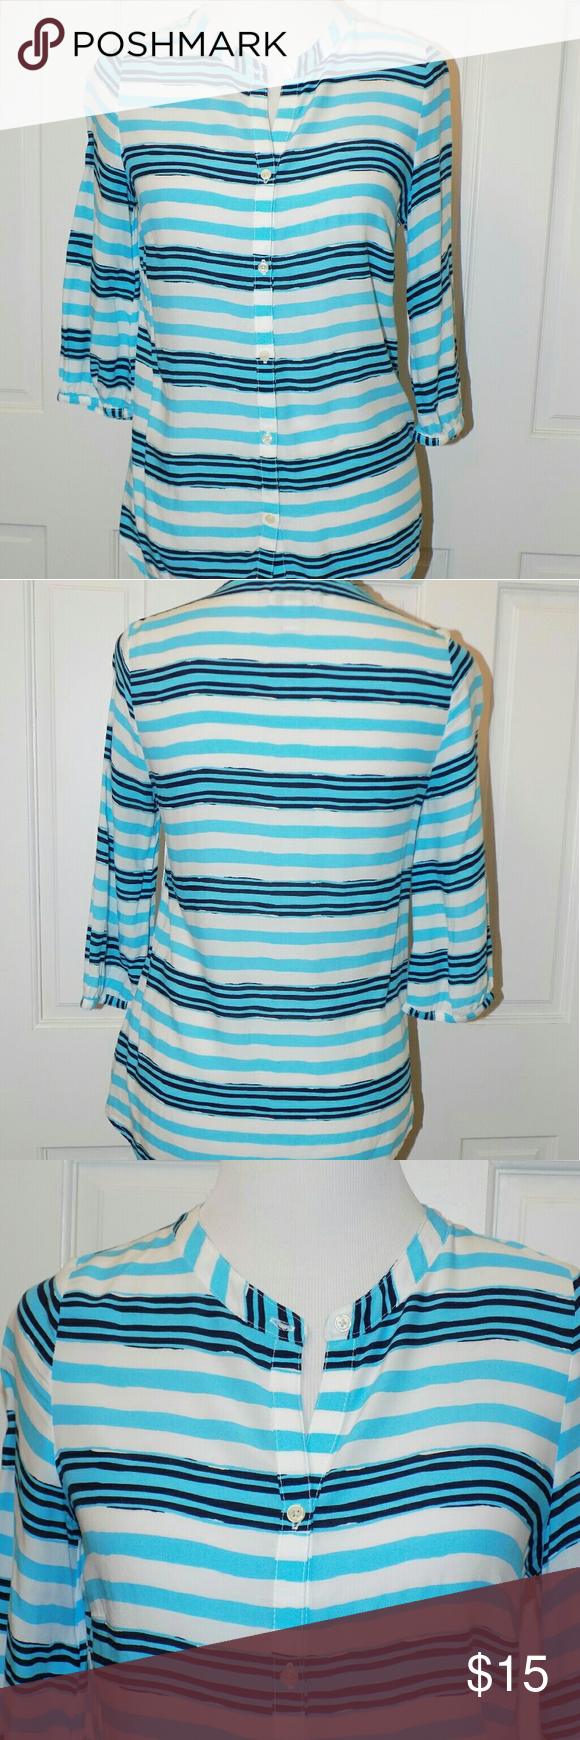 Old Navy Blue Stripped Tunic Blouse 3/4 sleeve Very soft and lightweight. 100% rayon. Buttons down the front. Chest - 18  Length - 26 Old Navy Tops Tunics